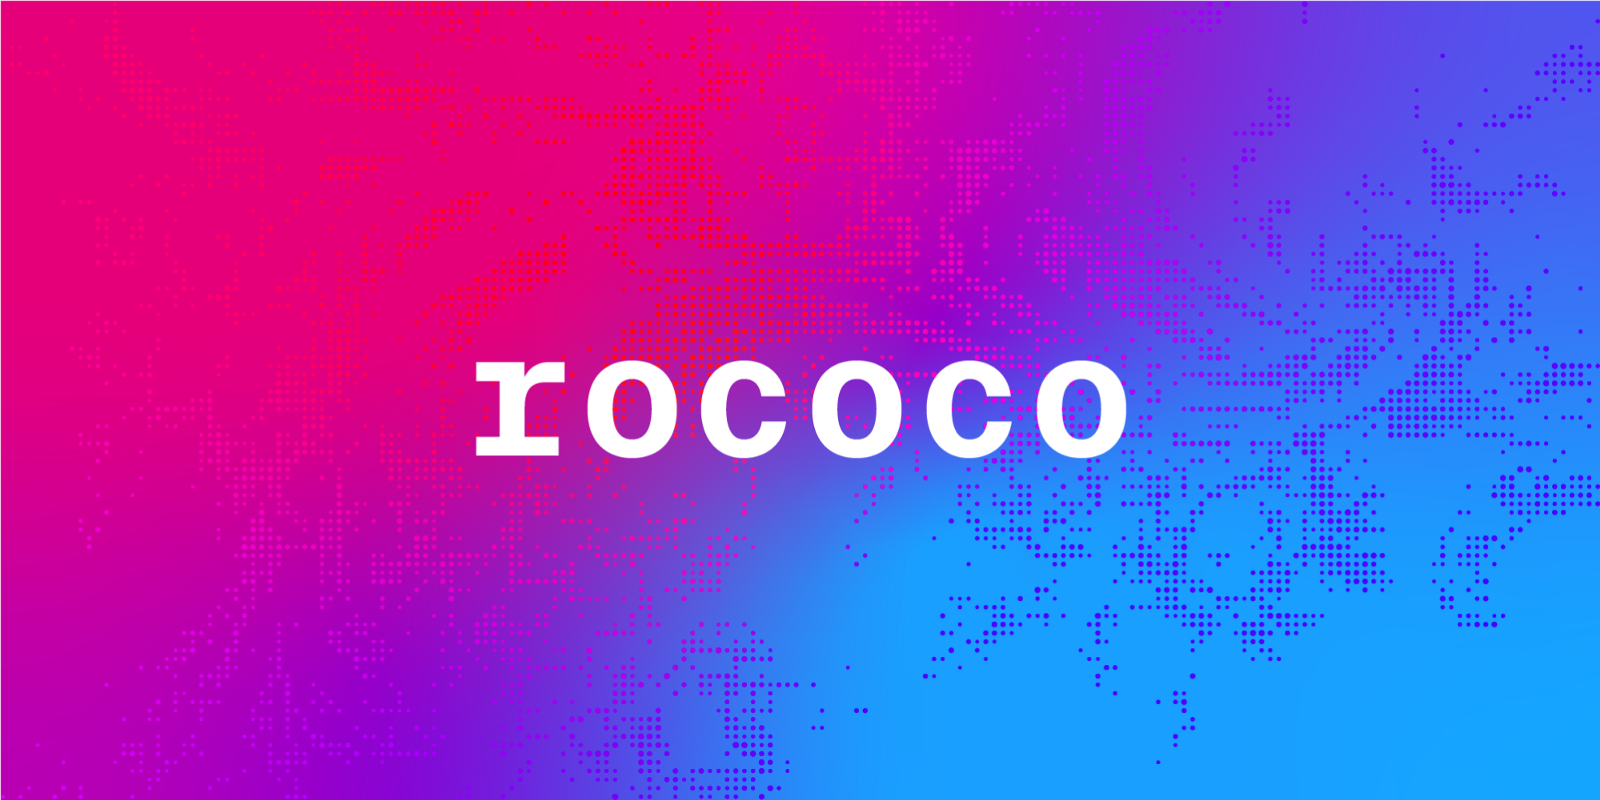 Rococo V1  -  A Holiday Gift to the Polkadot Community